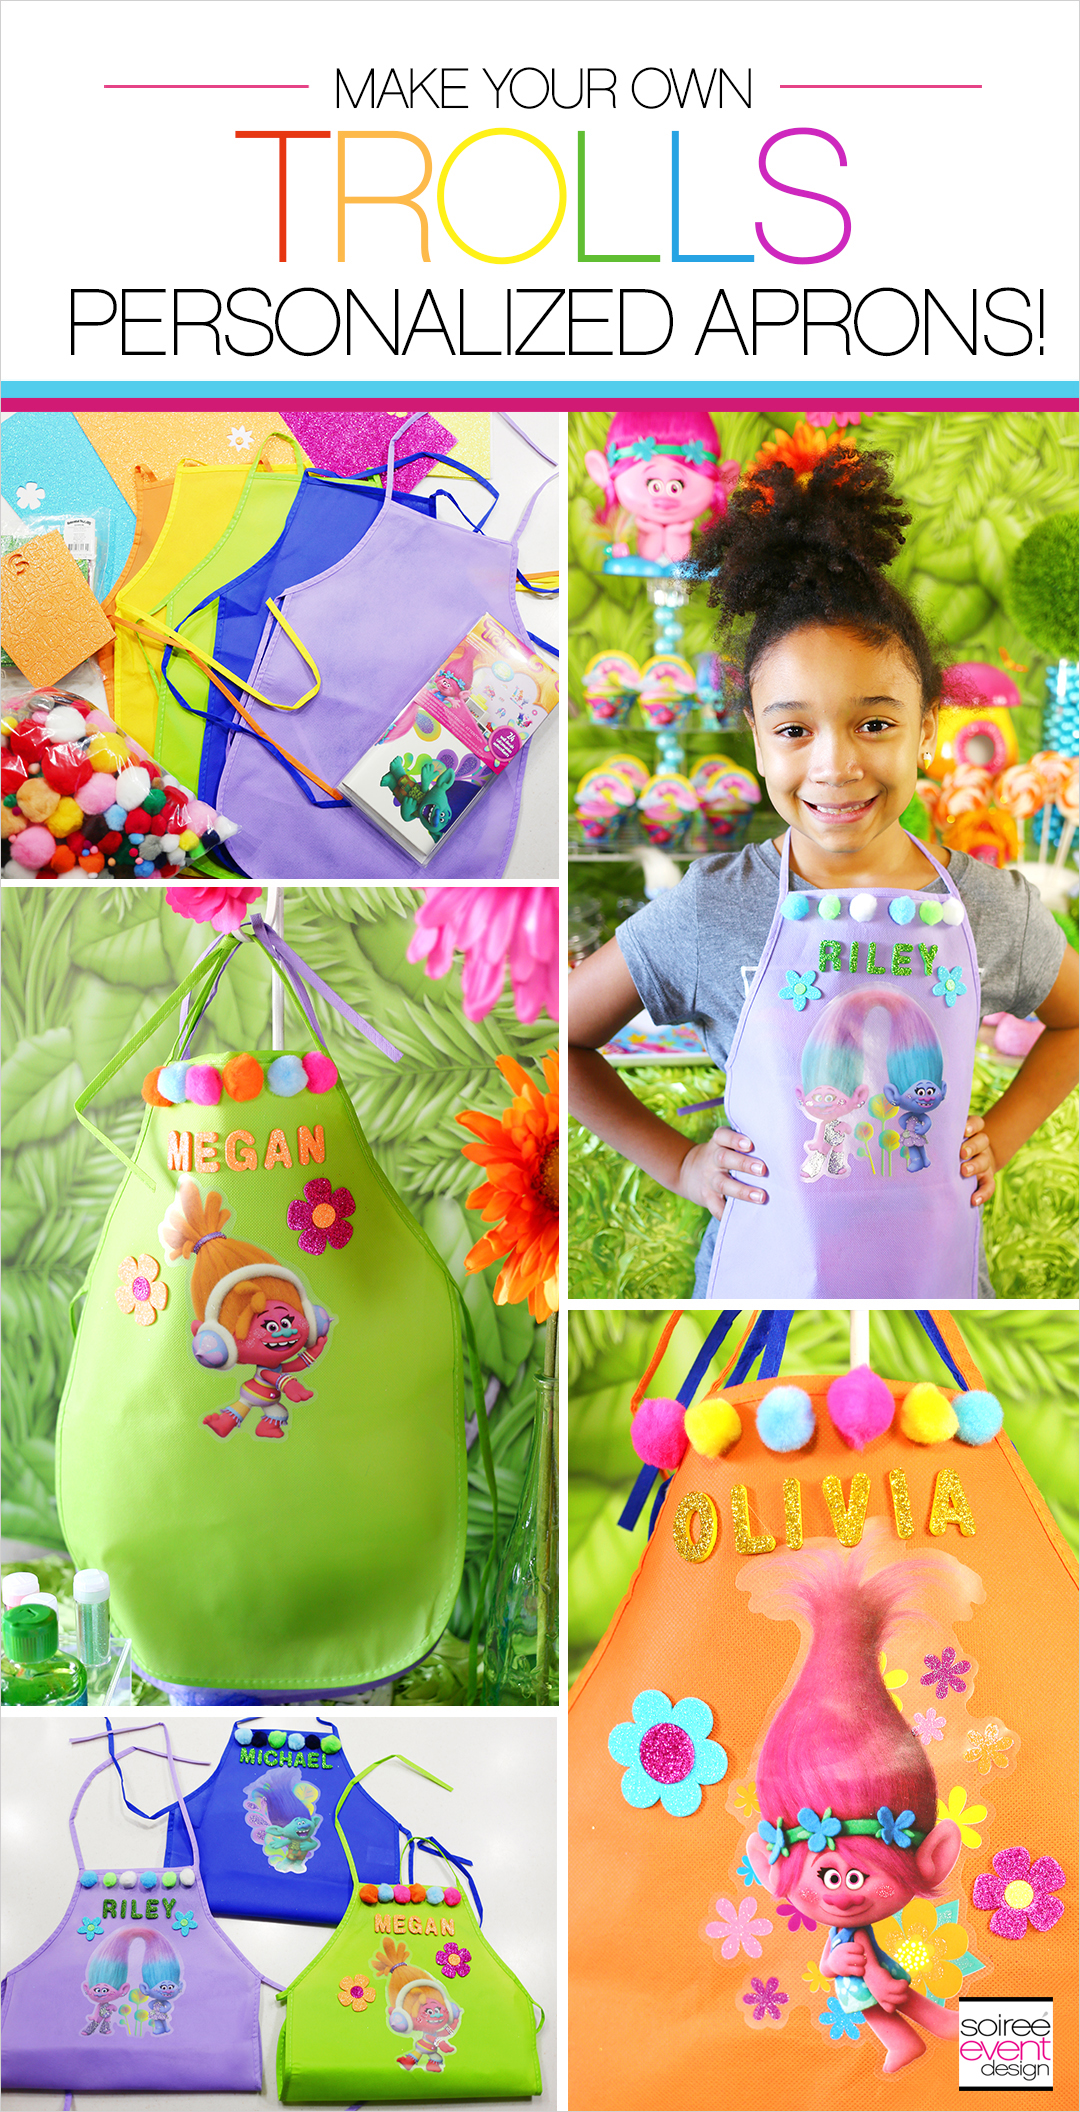 trolls-party-ideas-diy-trolls-personalized-aprons